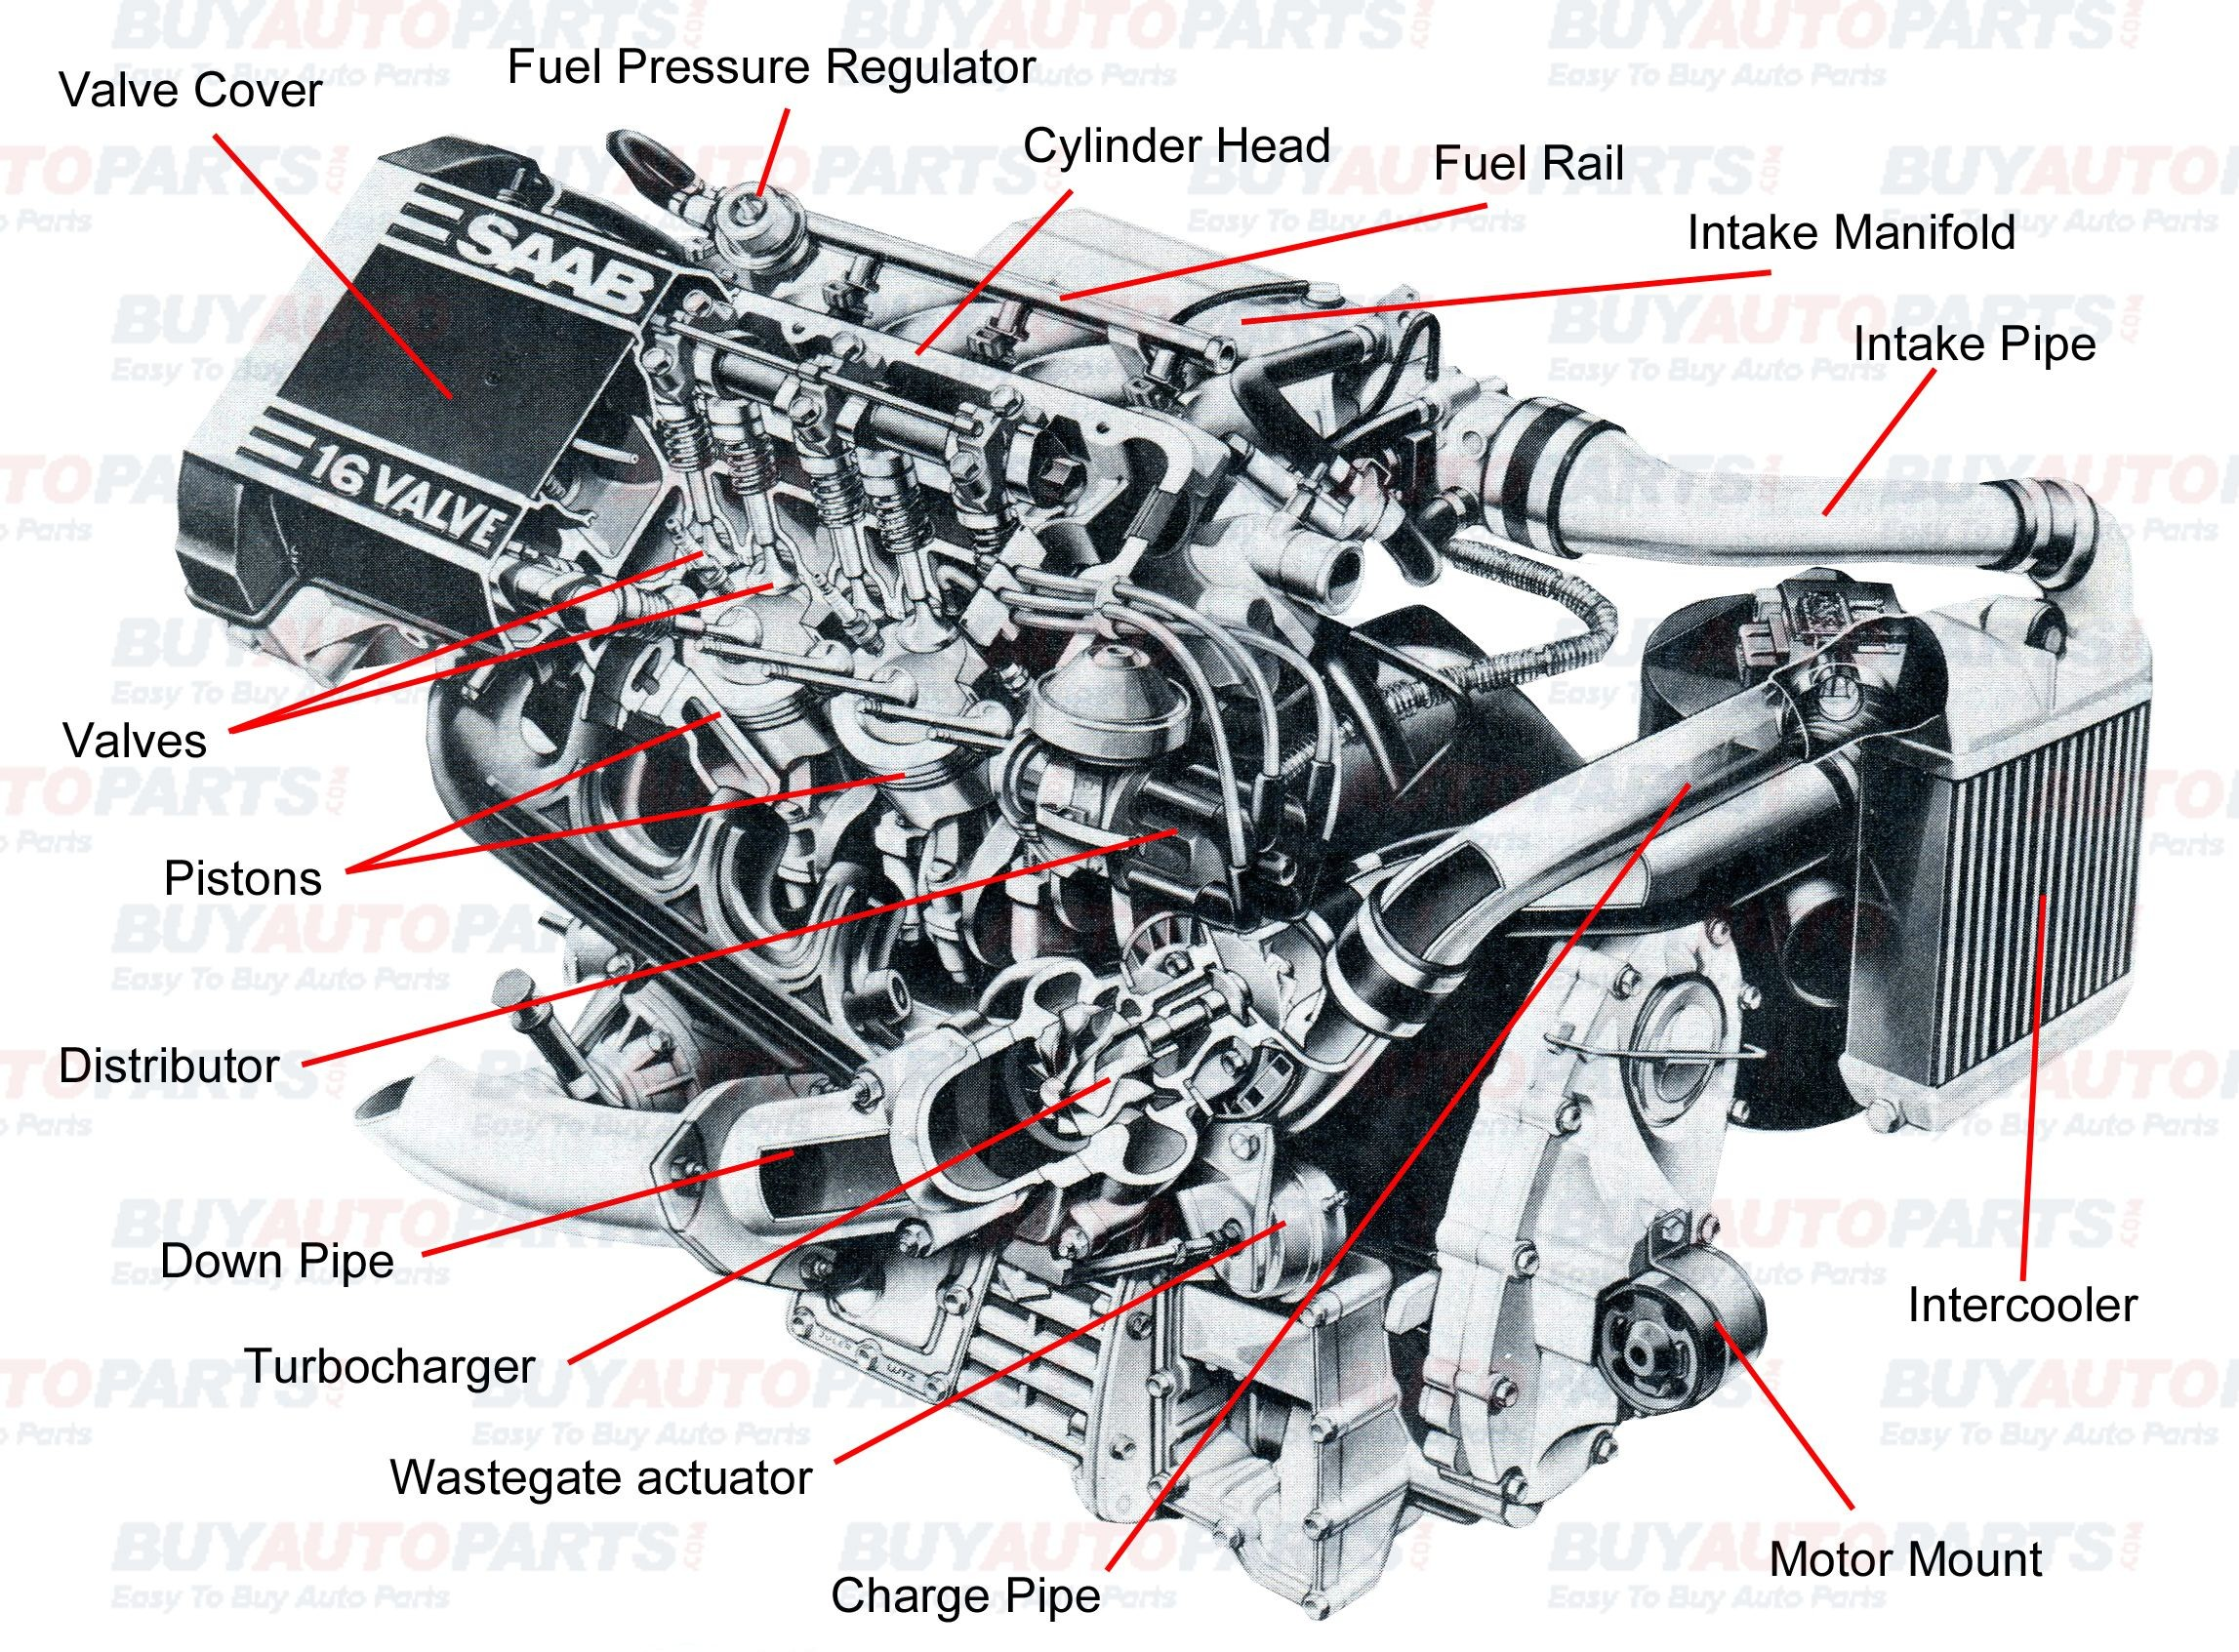 Engine Cooling Diagram All Internal Bustion Engines Have the Same Basic Ponents the Of Engine Cooling Diagram